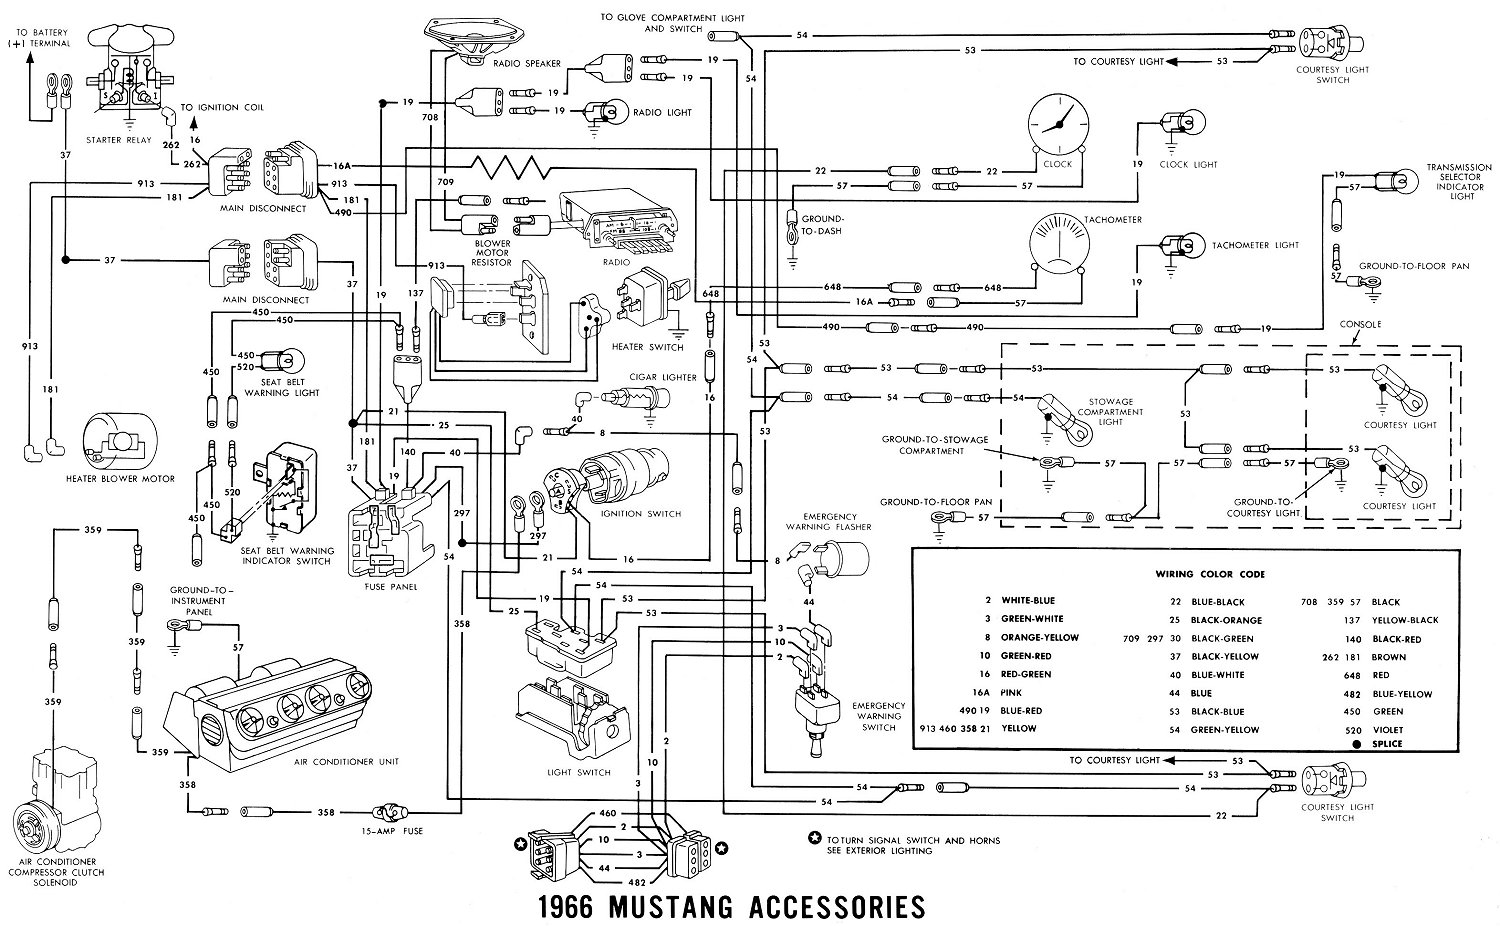 66acces1 66 mustang wiring diagram online 65 ford mustang wiring diagram 1965 ford mustang wiring diagrams at panicattacktreatment.co